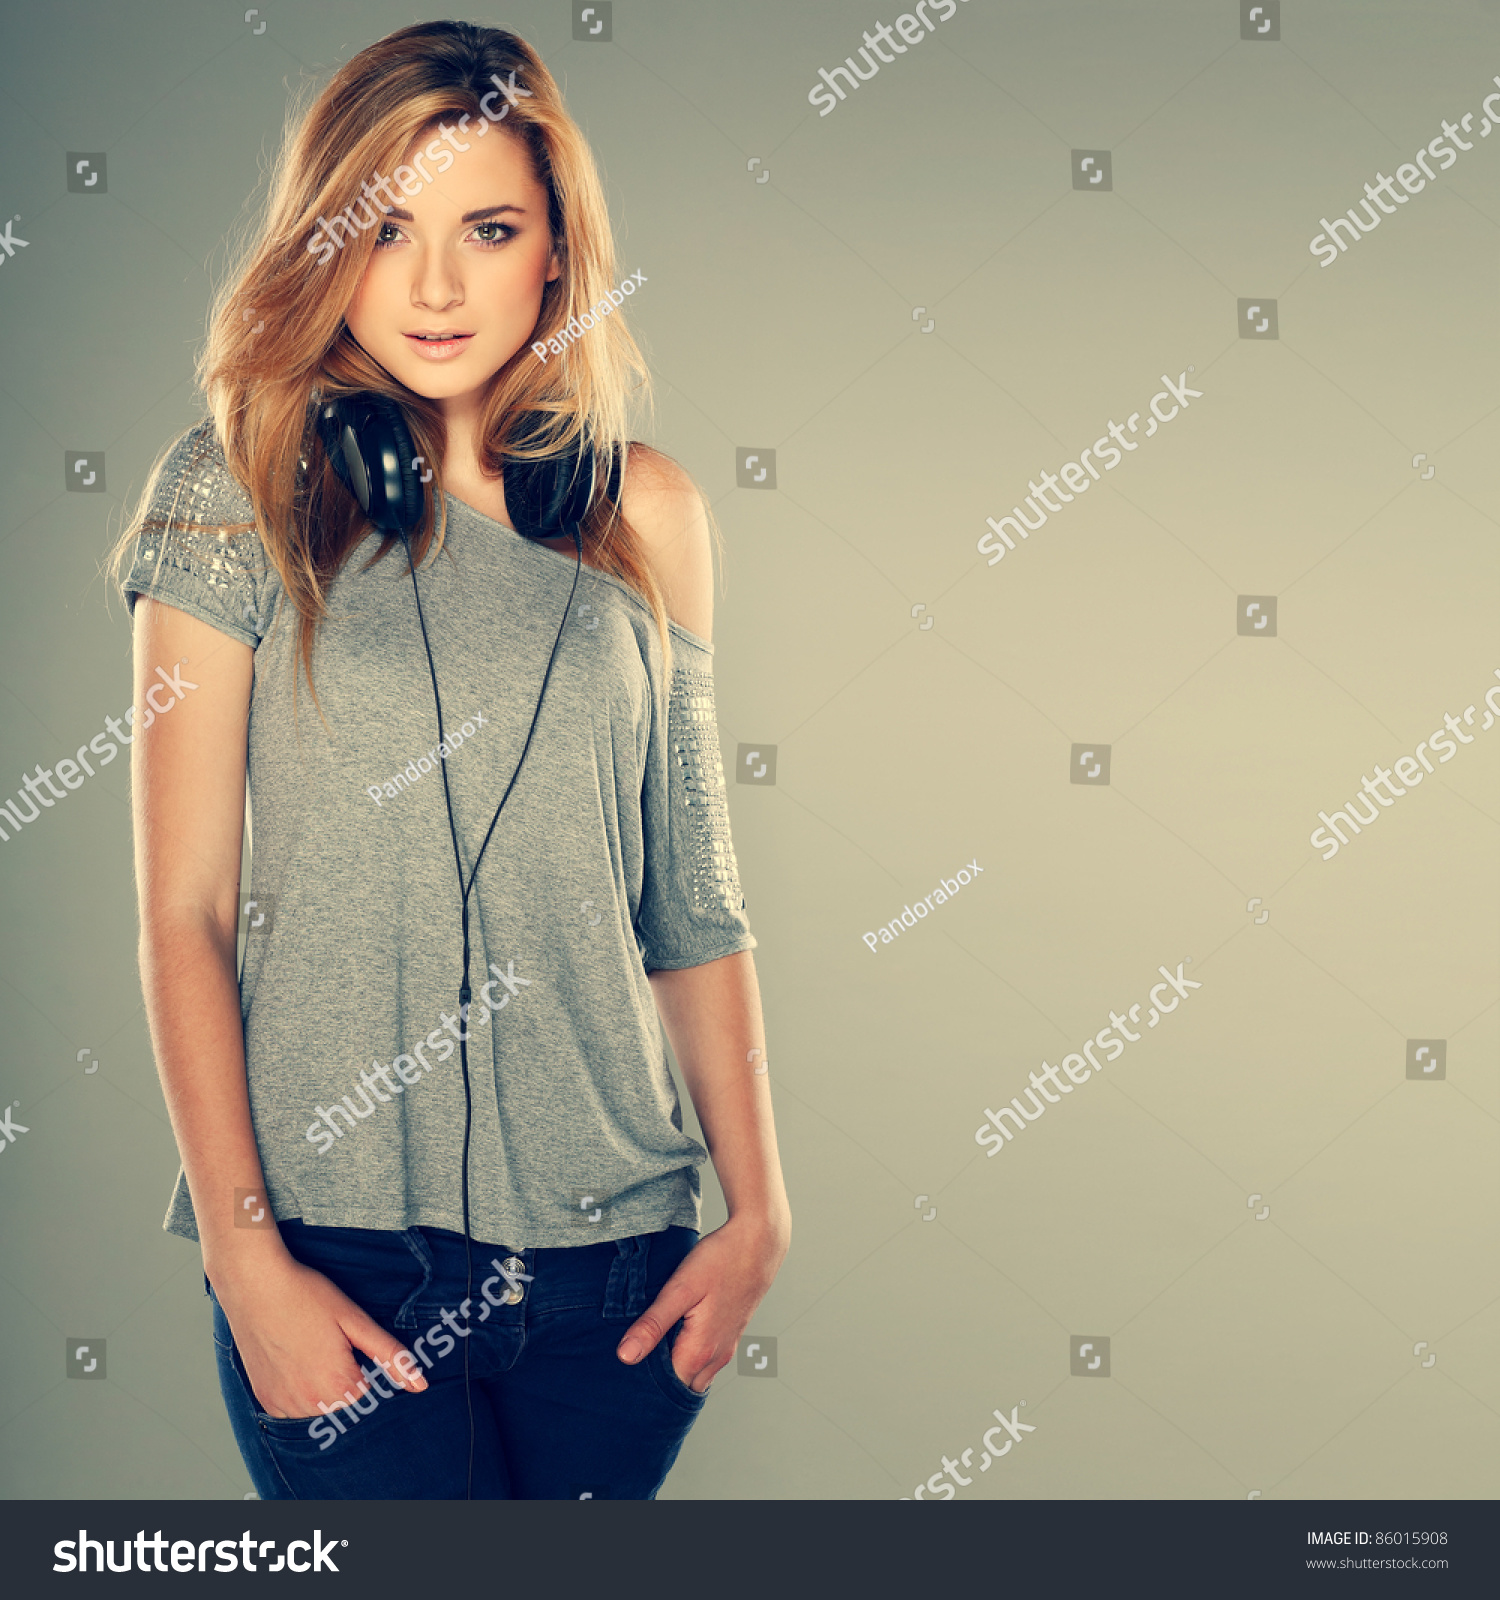 Beautiful Headphones Beautiful Girl Headphones Stock Photo 86015908 Shutterstock